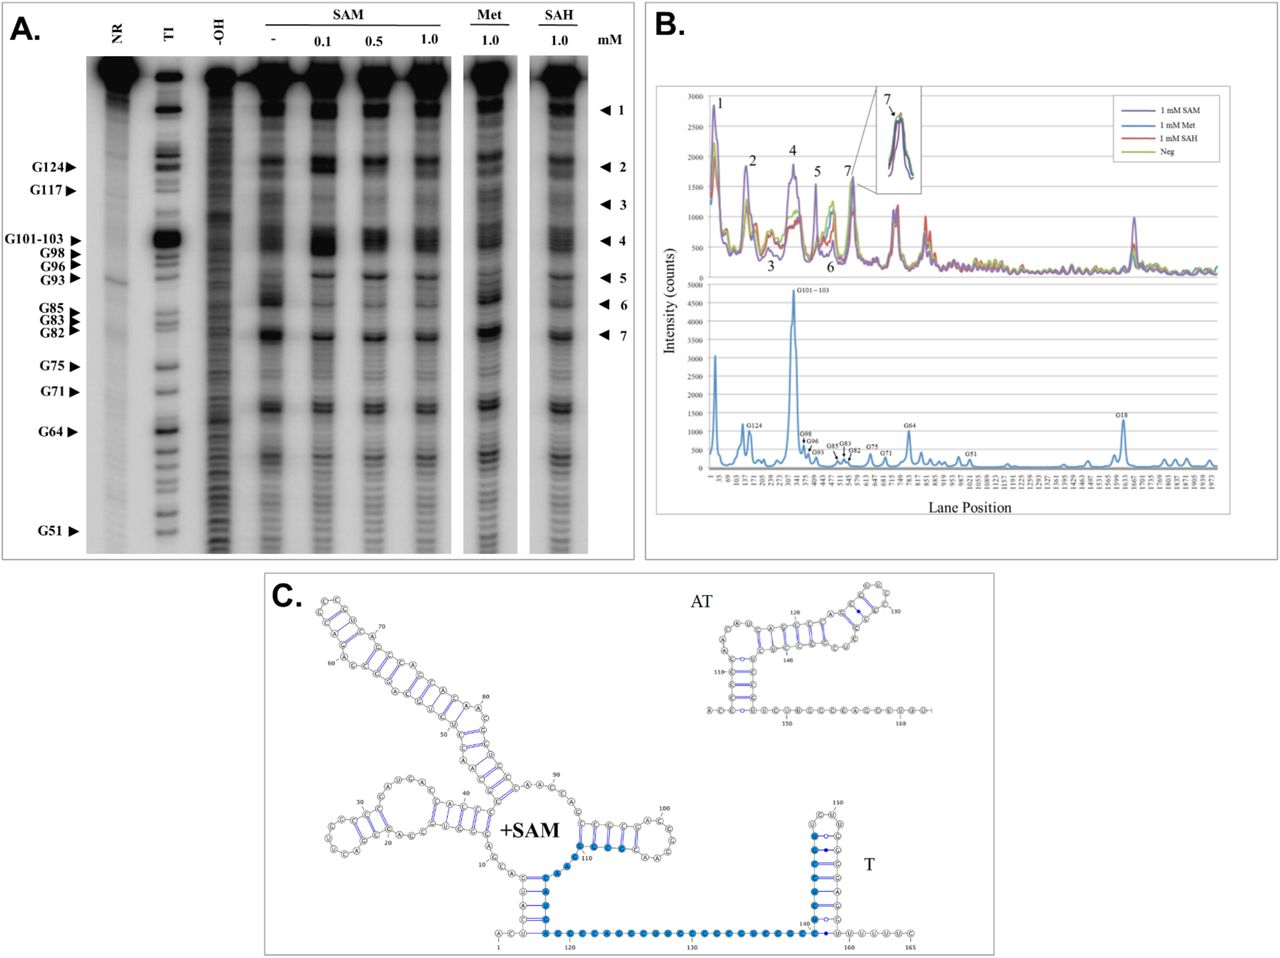 Structural analysis of the DseA riboswitch. ( A ) Spontaneous cleavage pattern of DseA in the absence or presence of SAM, methionine (Met), or SAH as indicated. The location of some of the guanosine residues (G) cleaved by RNase T1 is indicated. NR: no reaction; T1: RNase T1 ladder; -OH: alkaline hydrolysis ladder. ( B ) Lane profiles as determined by the program ImageQuant (GE Healthcare) of in-line probing gel. The numbers match to the same numbered areas of the gel. The lane profile of the T1 ladder is plotted in the bottom panel and represents the G residues as labeled. ( C ) Predicted secondary structure of DseA. When SAM concentrations are high an intrinsic terminator (T) is predicted to form. When SAM concentrations drop the anti-terminator (AT) forms instead. Bases colored blue are involved in forming the antiterminator.